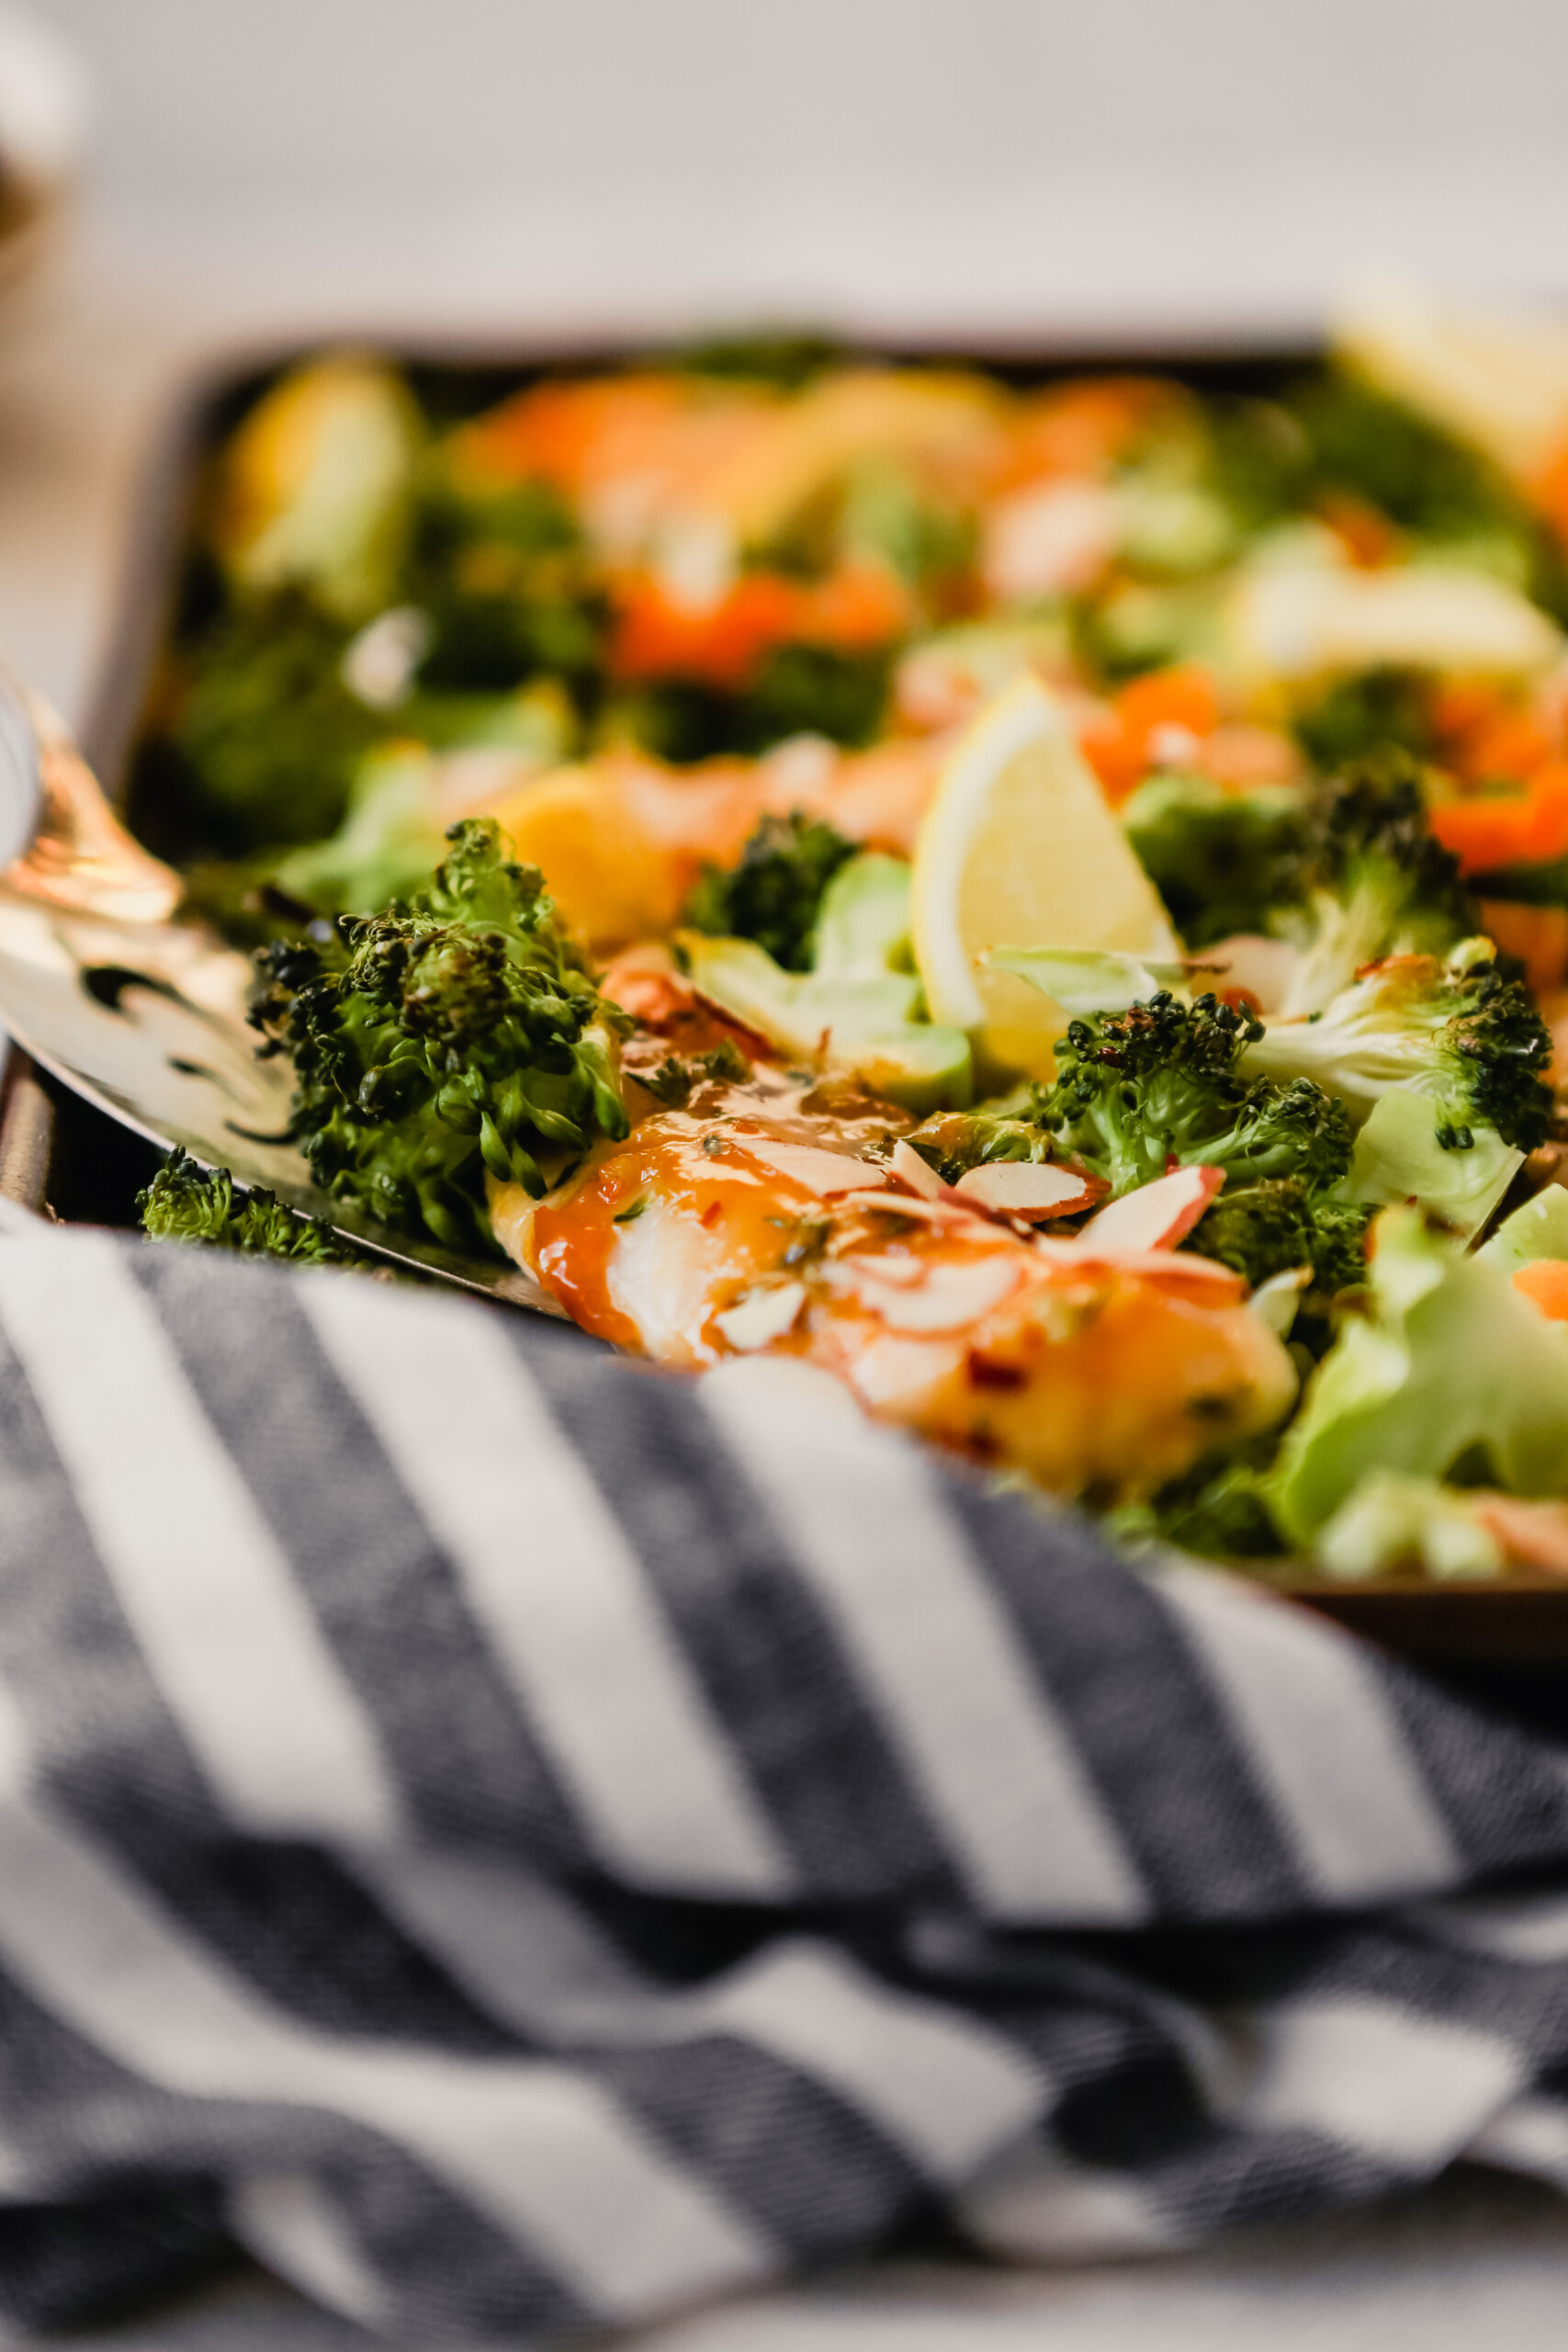 Photograph of apricot-glazed chicken on a sheet pan with broccoli, almond and lemon wedges.